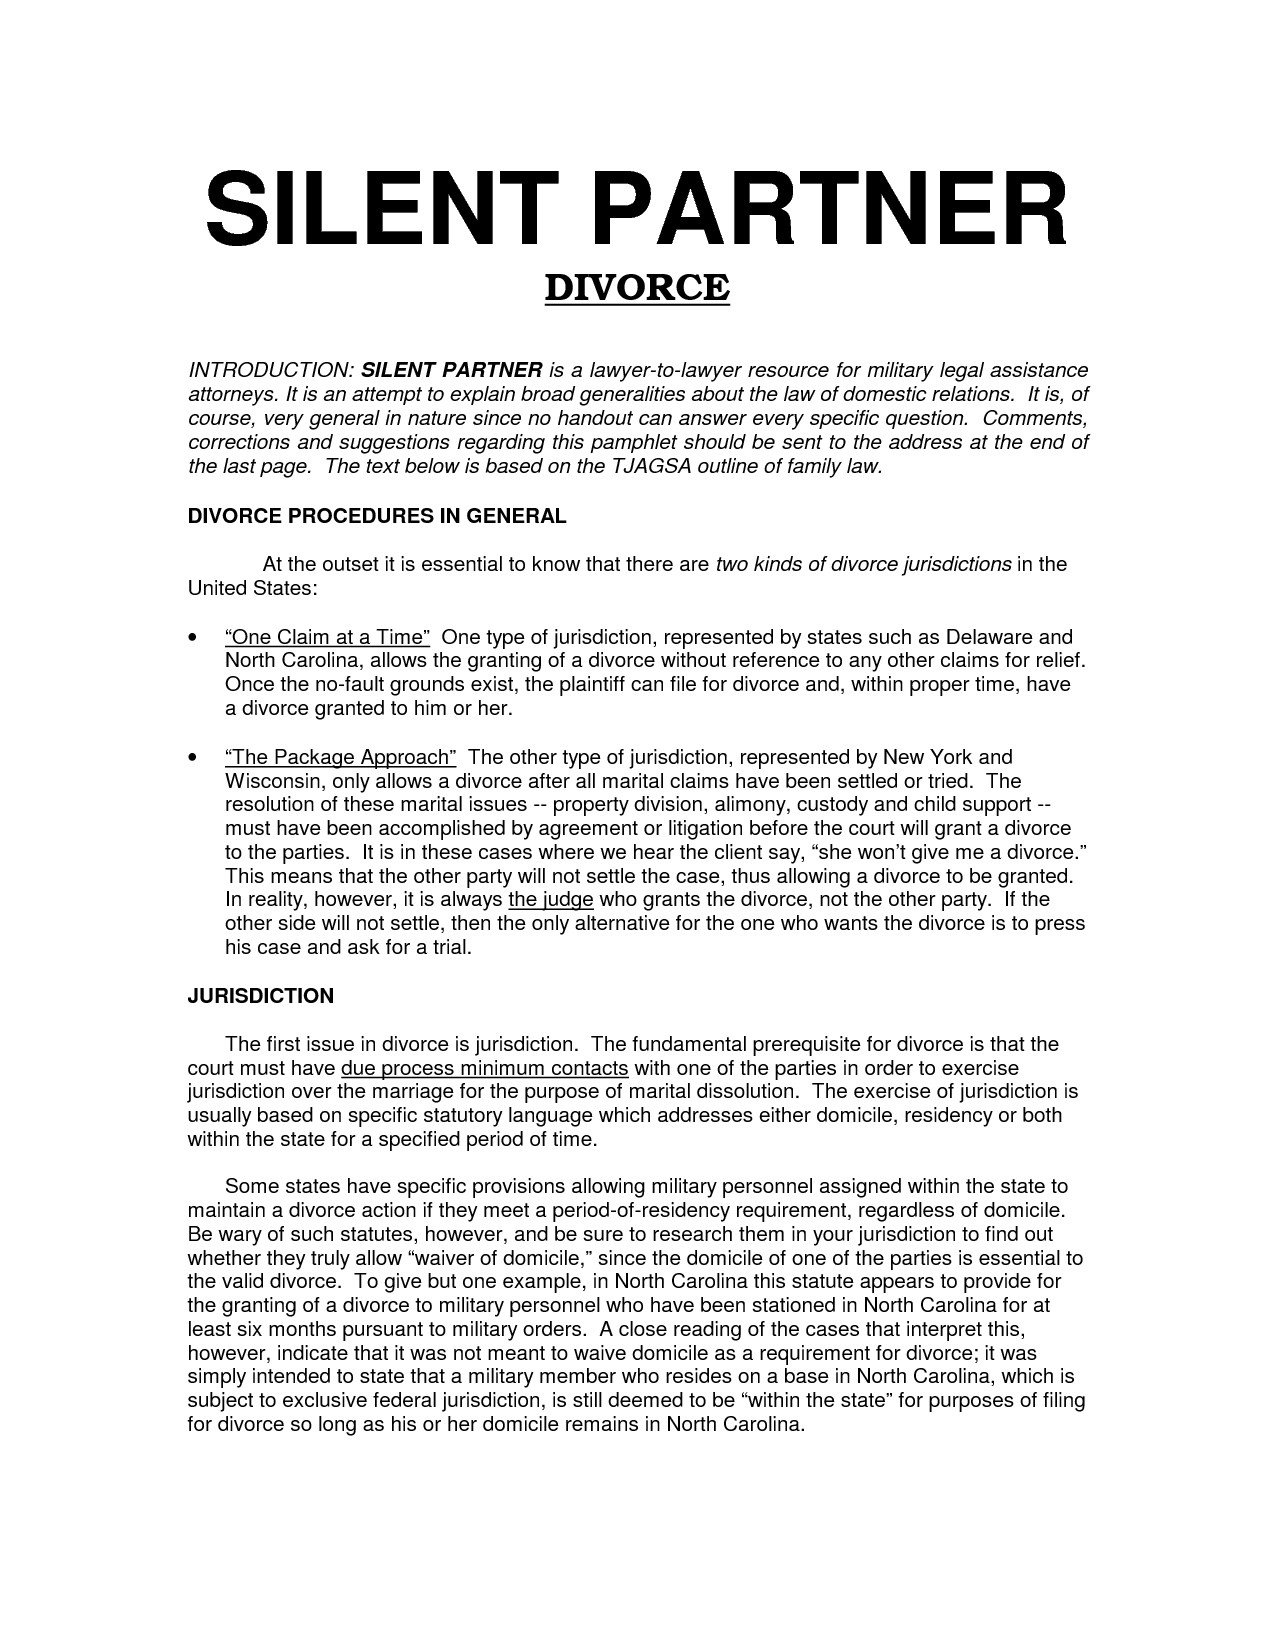 Silent Investor Agreement Silent Partnership Agreement Template Perfect Free Silent